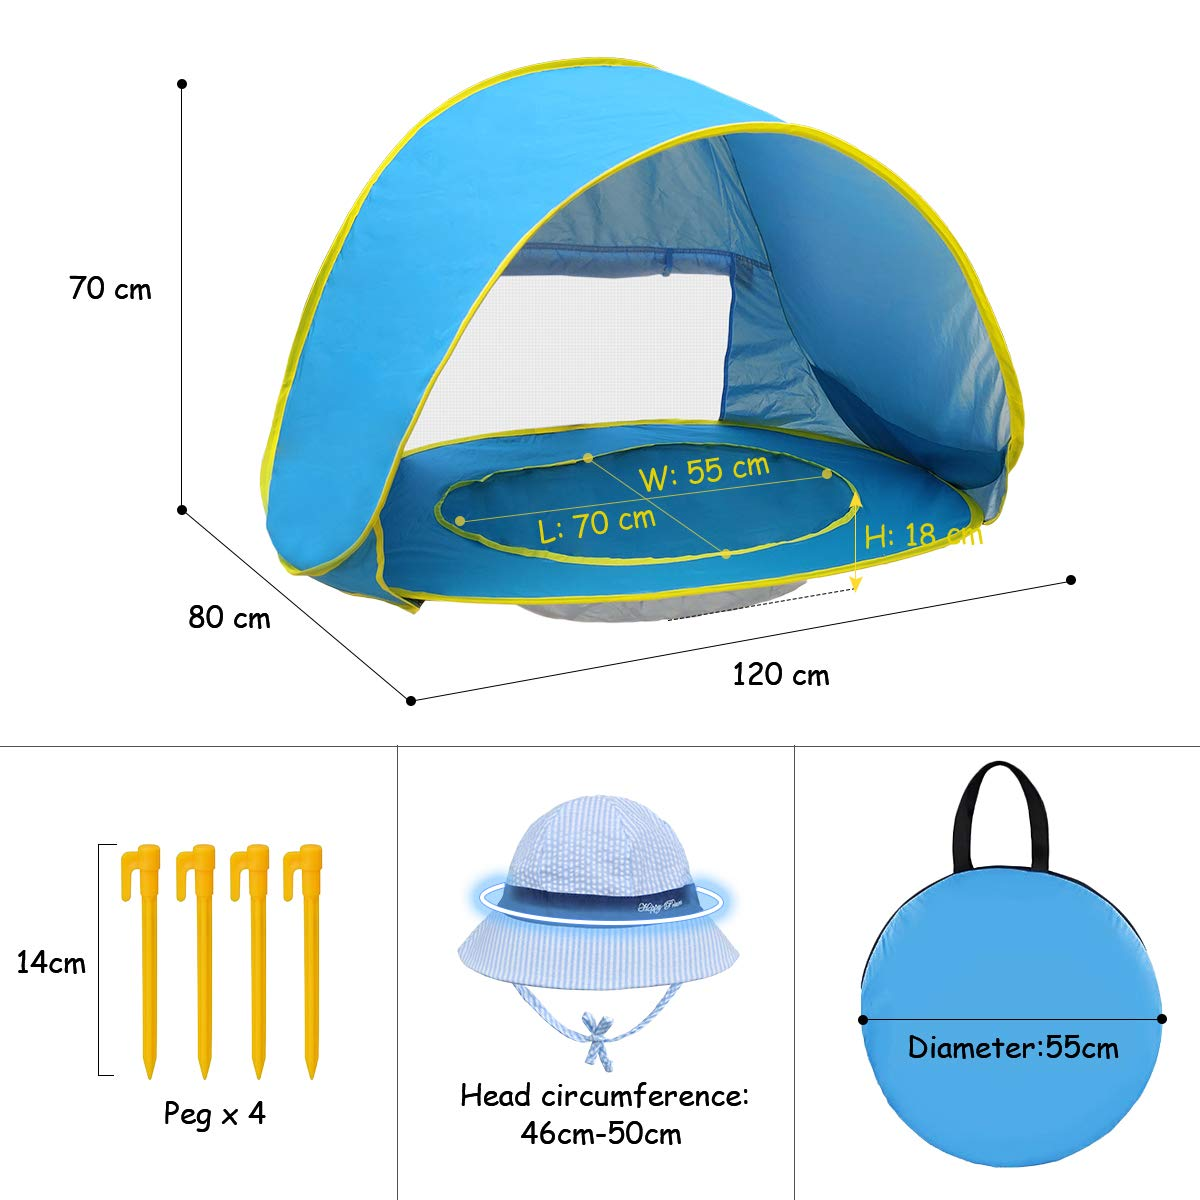 LOYO Baby Beach Tent with Built-in Pool Infant Ultralight Automatic Pop Up Tent UPF 50+ Beach Shade UV Protection Sun Shelters with Carry Bag and A Bonus Sunshade Hat for Toddler Aged 0-3